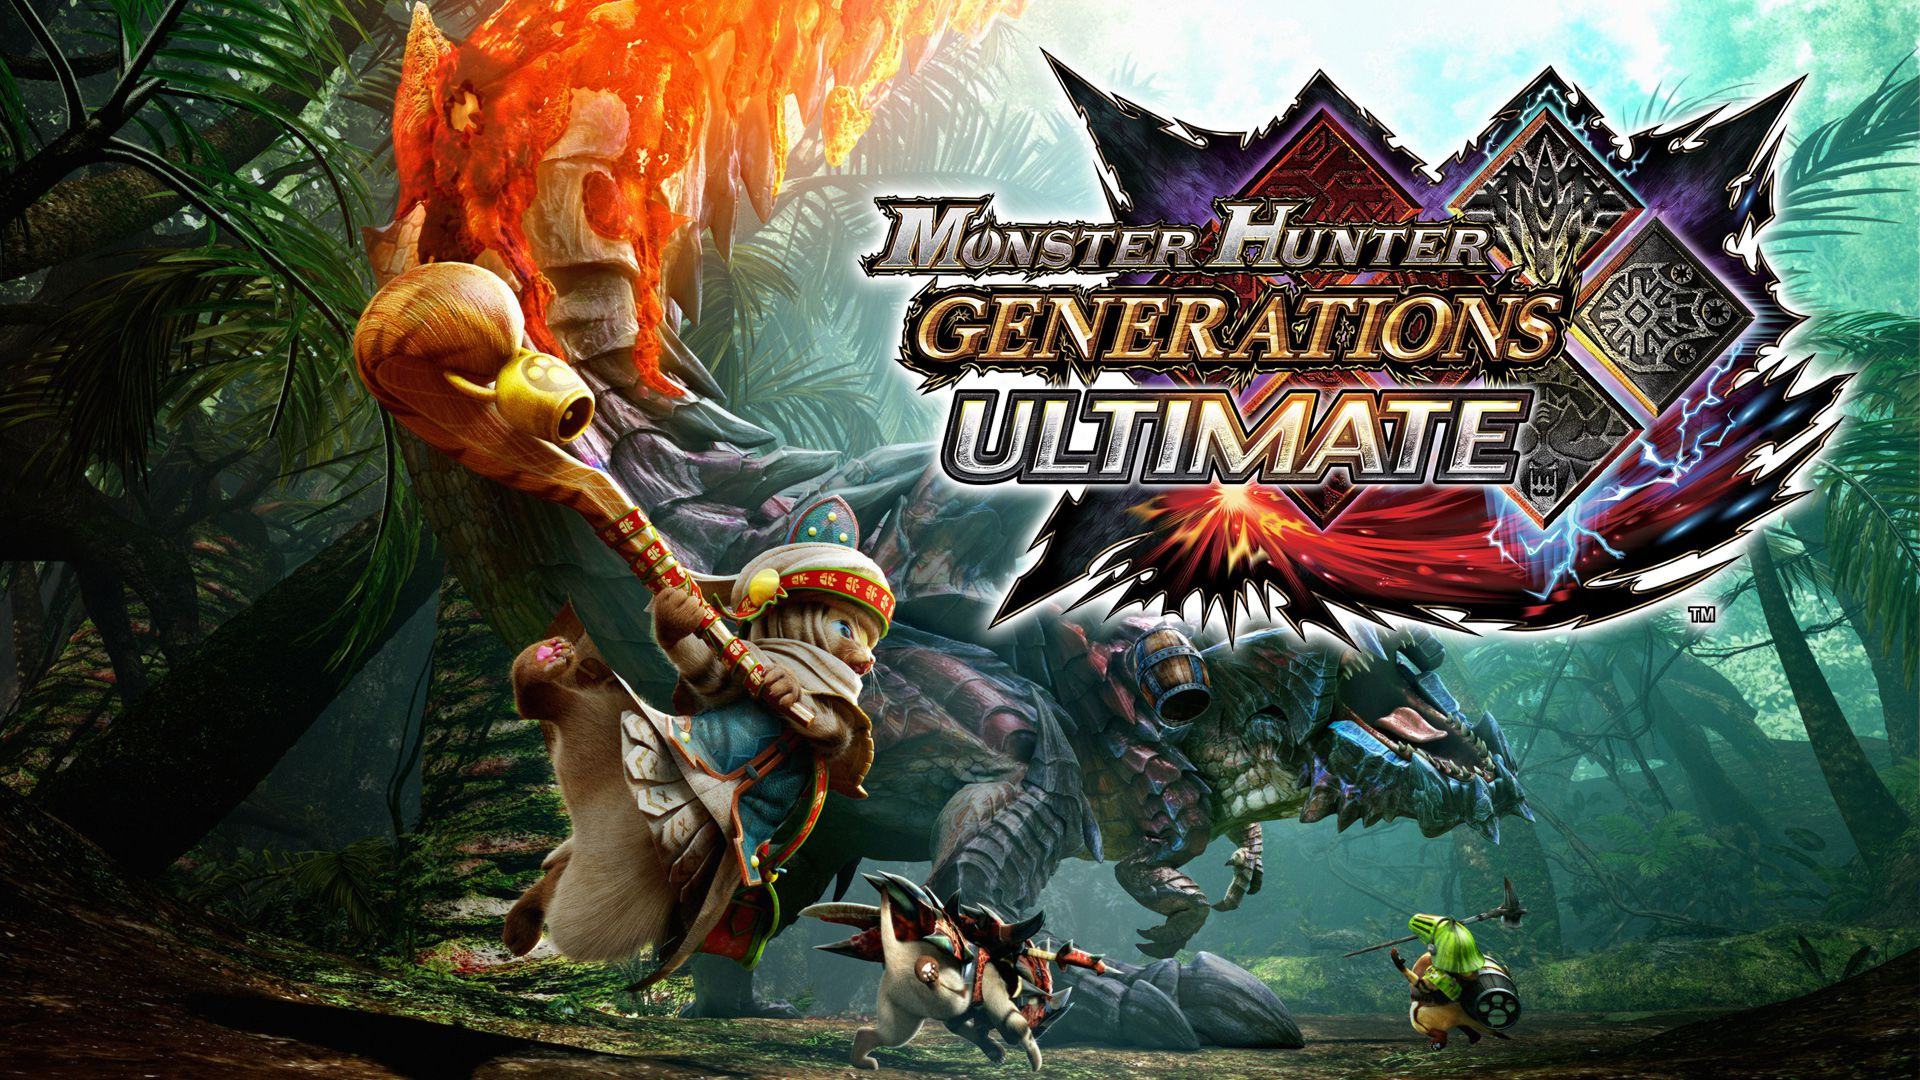 How to Transfer Save Data From Monster Hunter Generations 3DS to